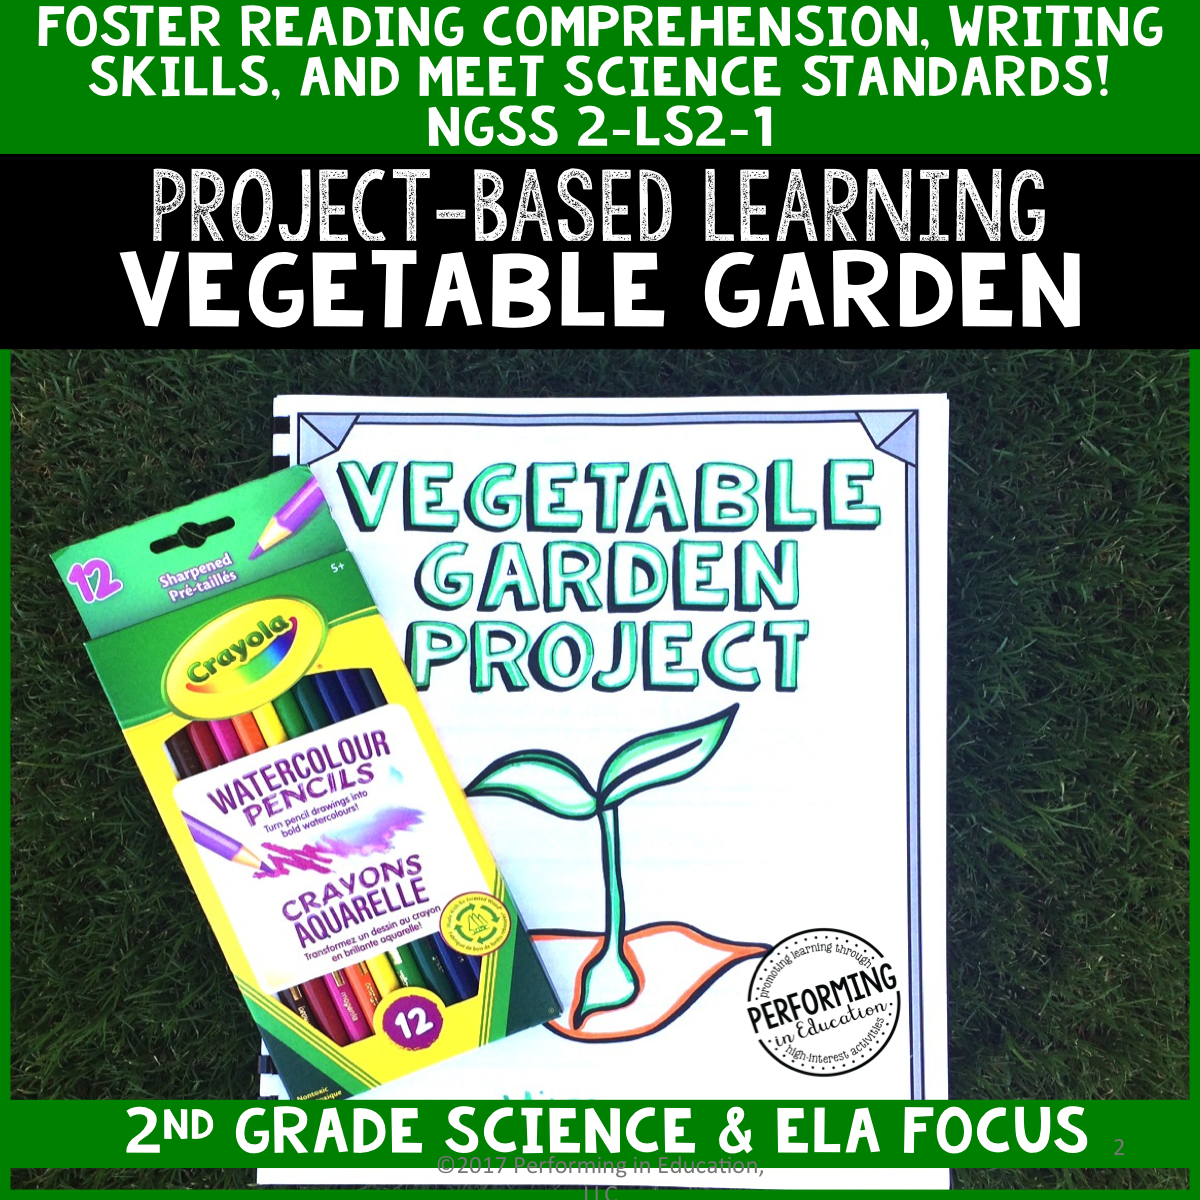 2nd Grade Project-Based Learning: School Garden - Science Text Included 00061